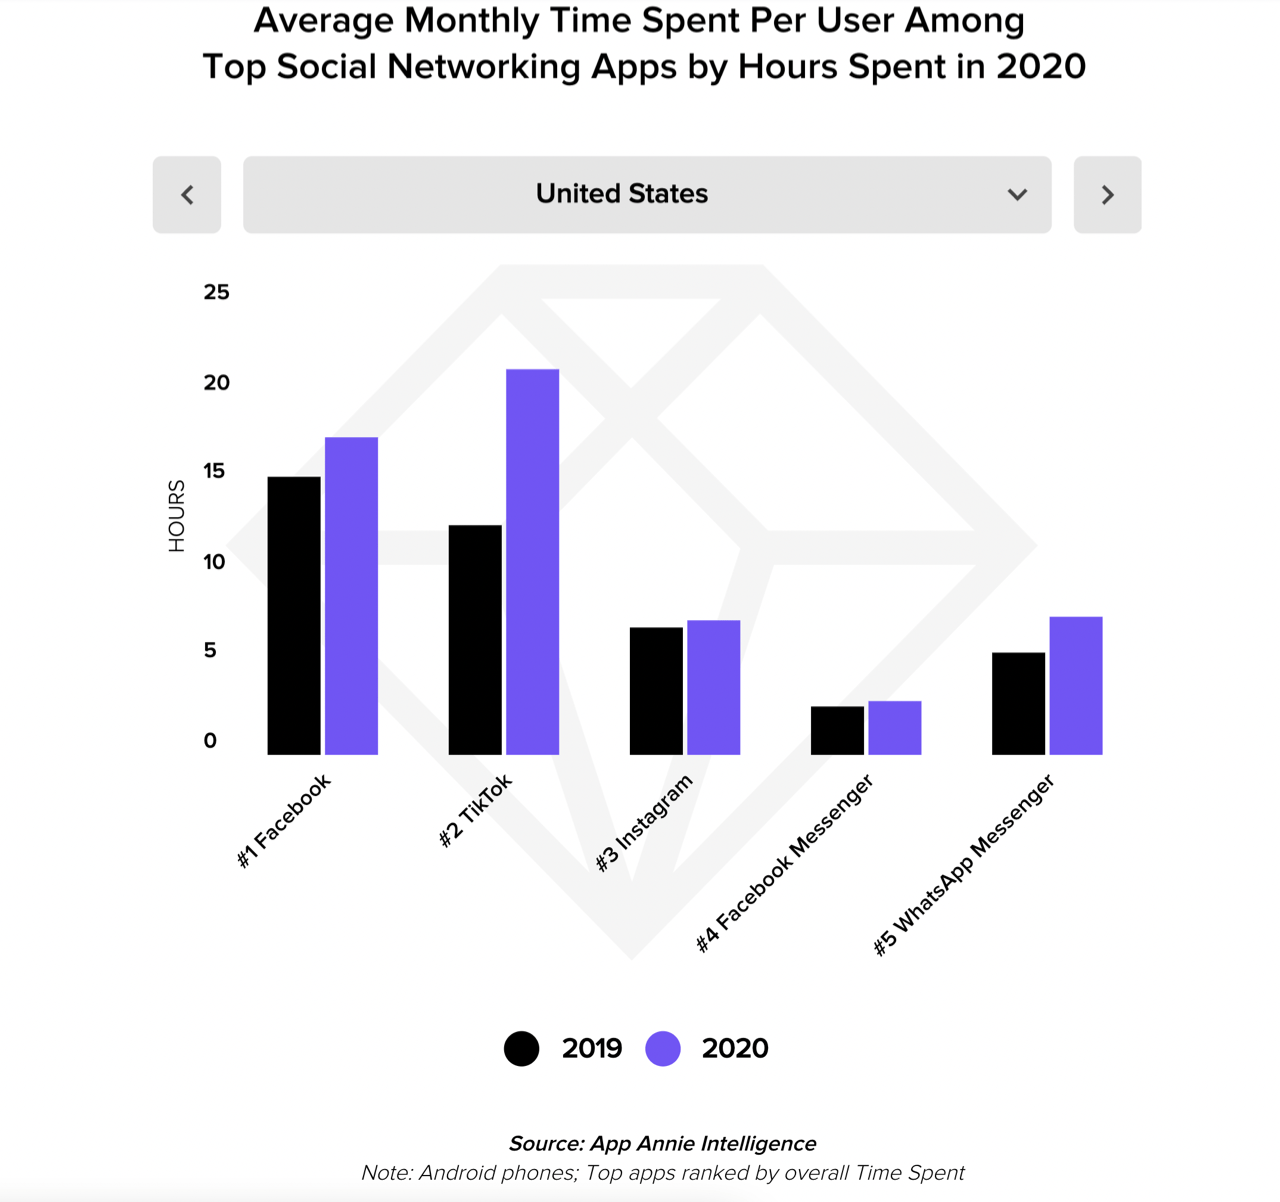 TikTok has the most usage in the U.S. according to AppAnnie